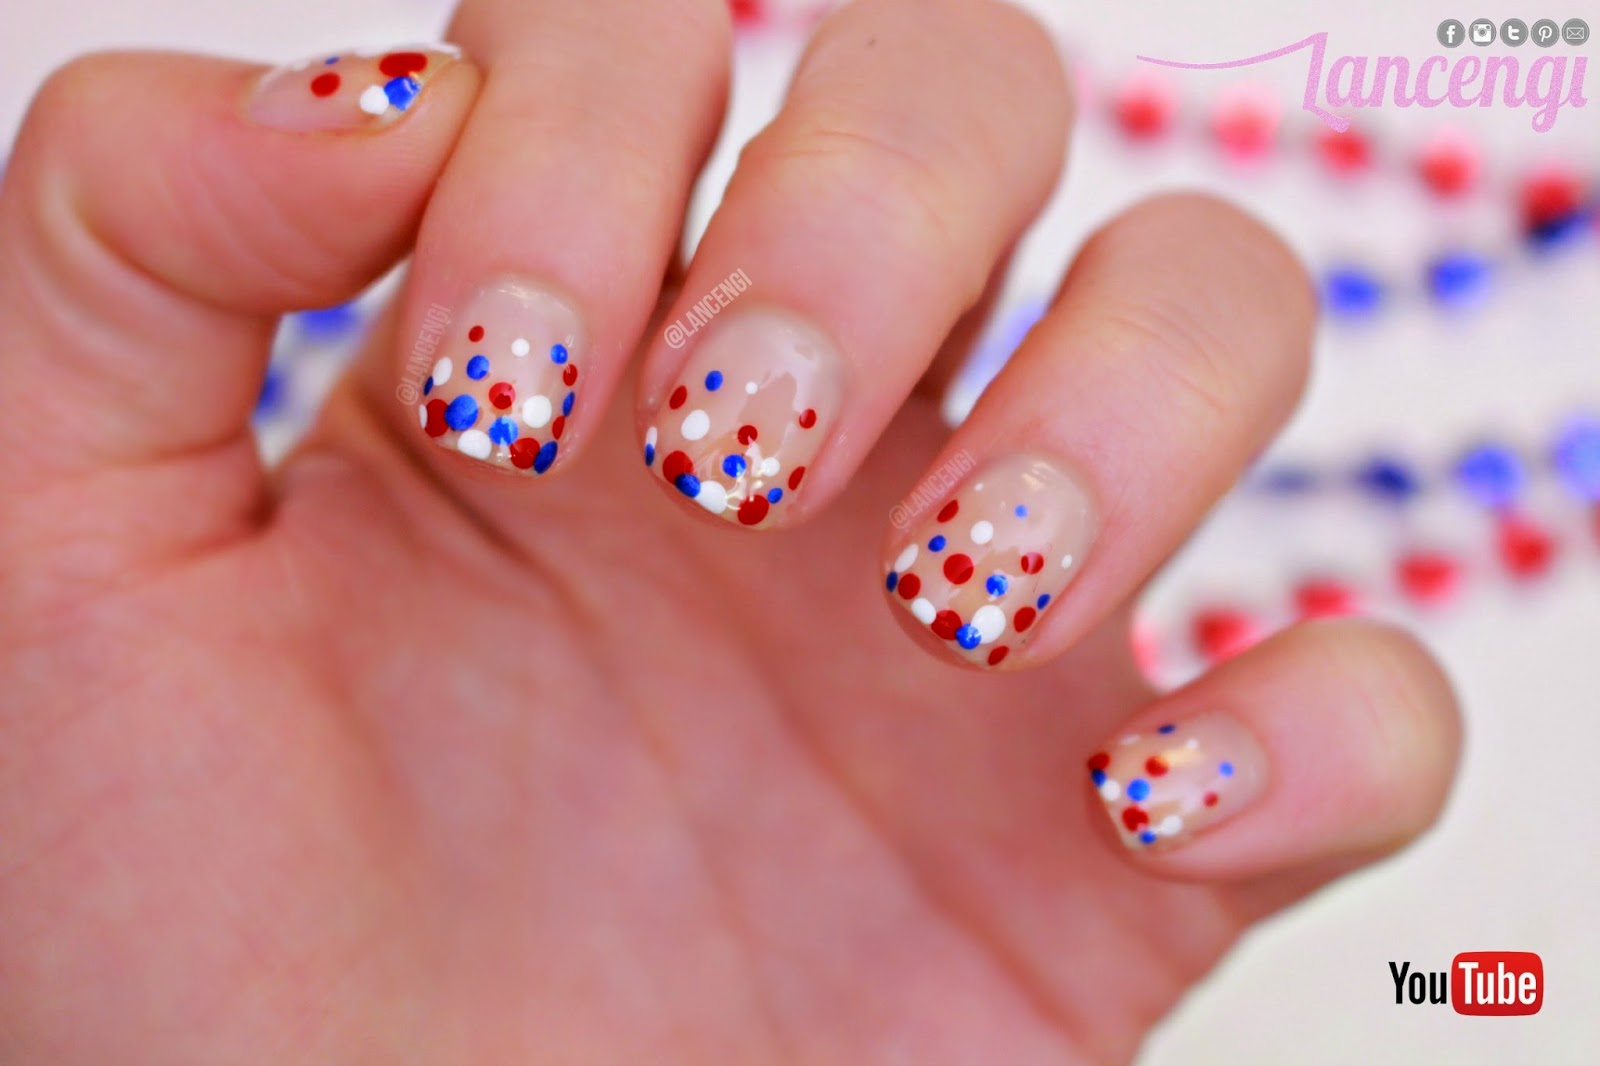 Lancengi Easy Bubble Memorial Day Nail Art Designs For Short Nails